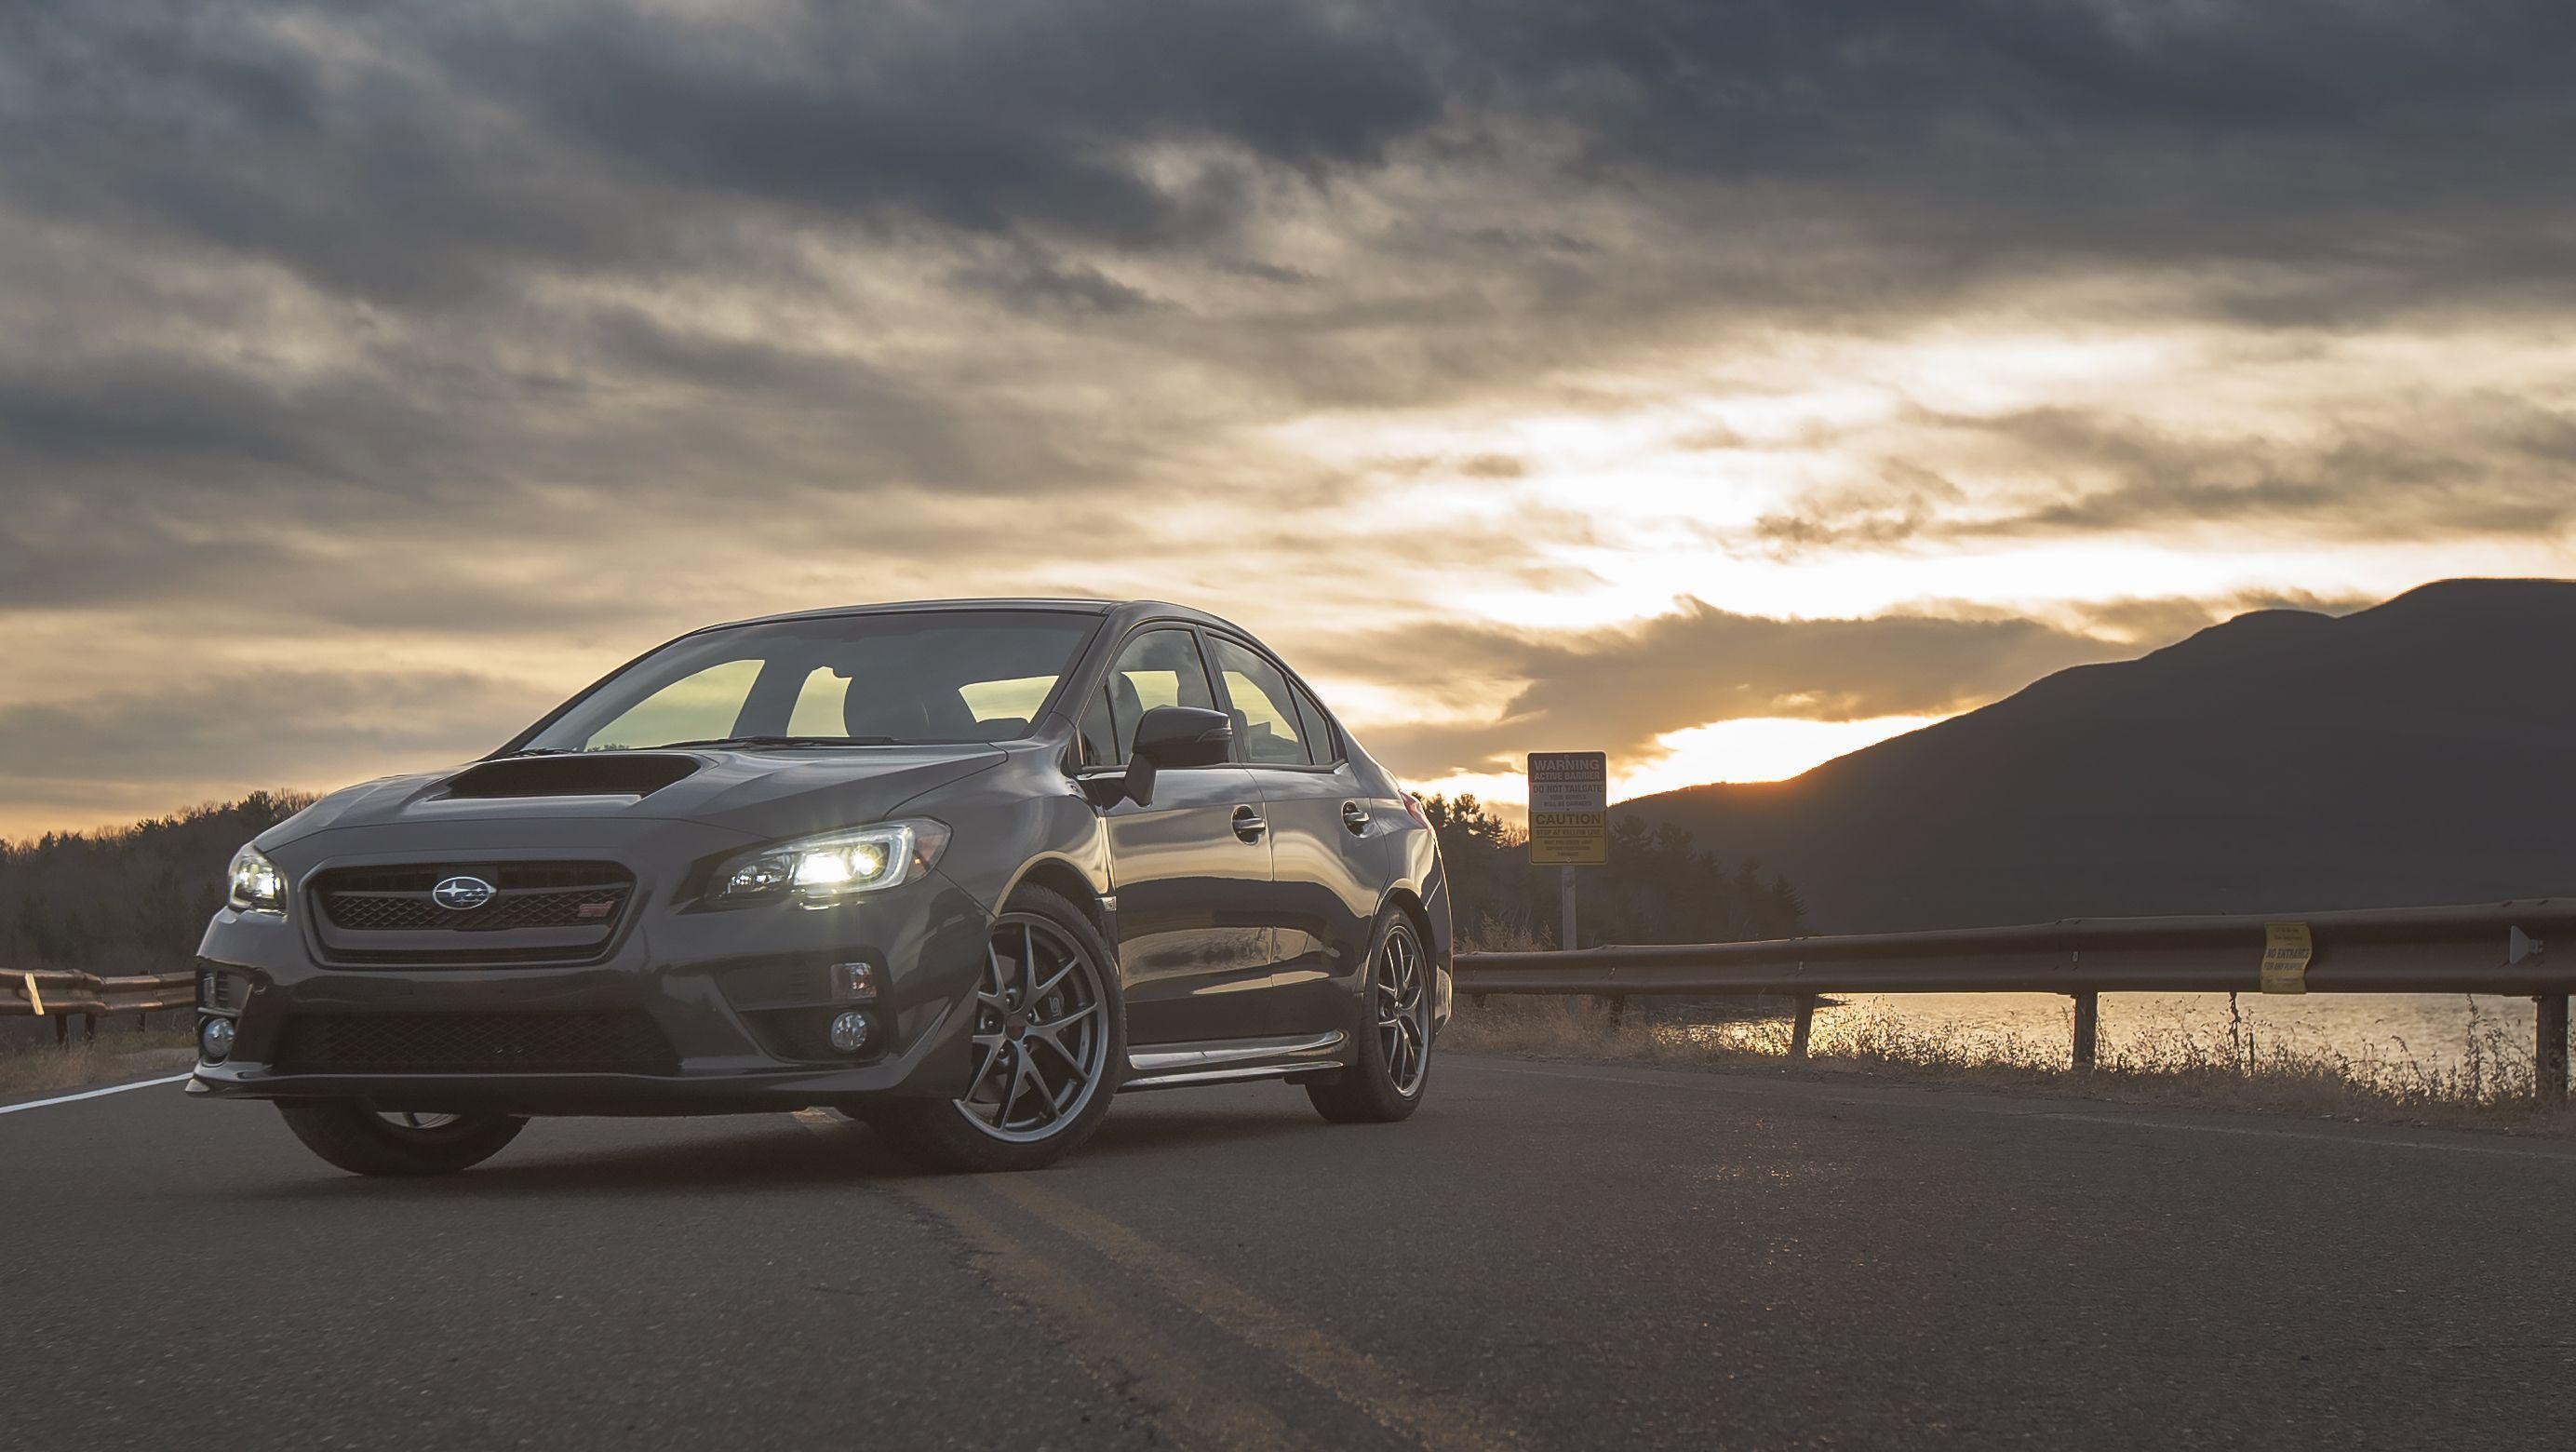 Your Ridiculously Awesome Subaru WRX STI Wallpaper Is Here